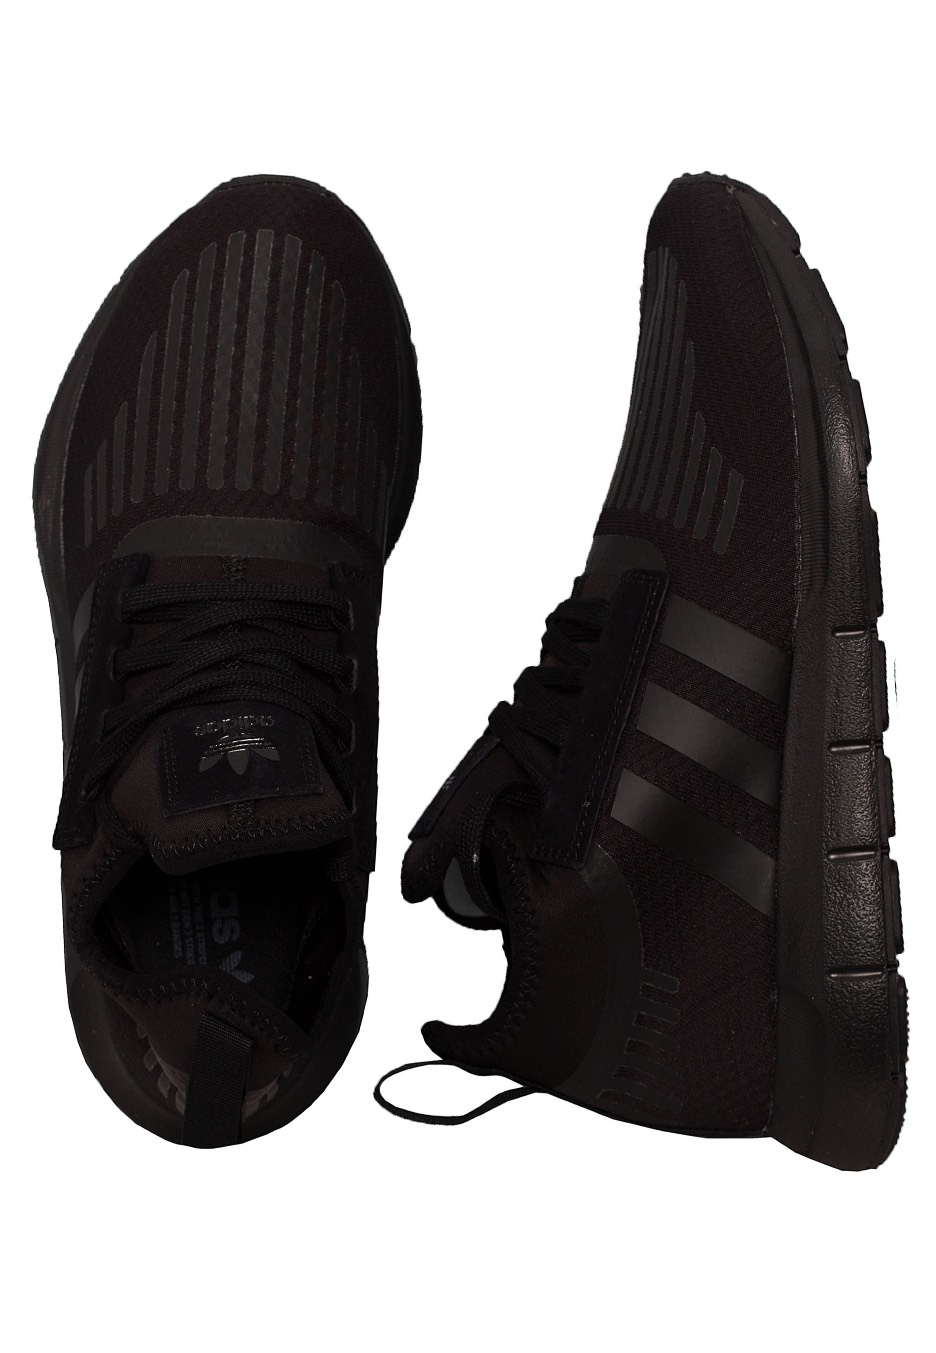 Adidas Swift Run Barrier Core BlackCore BlackCore Black Shoes